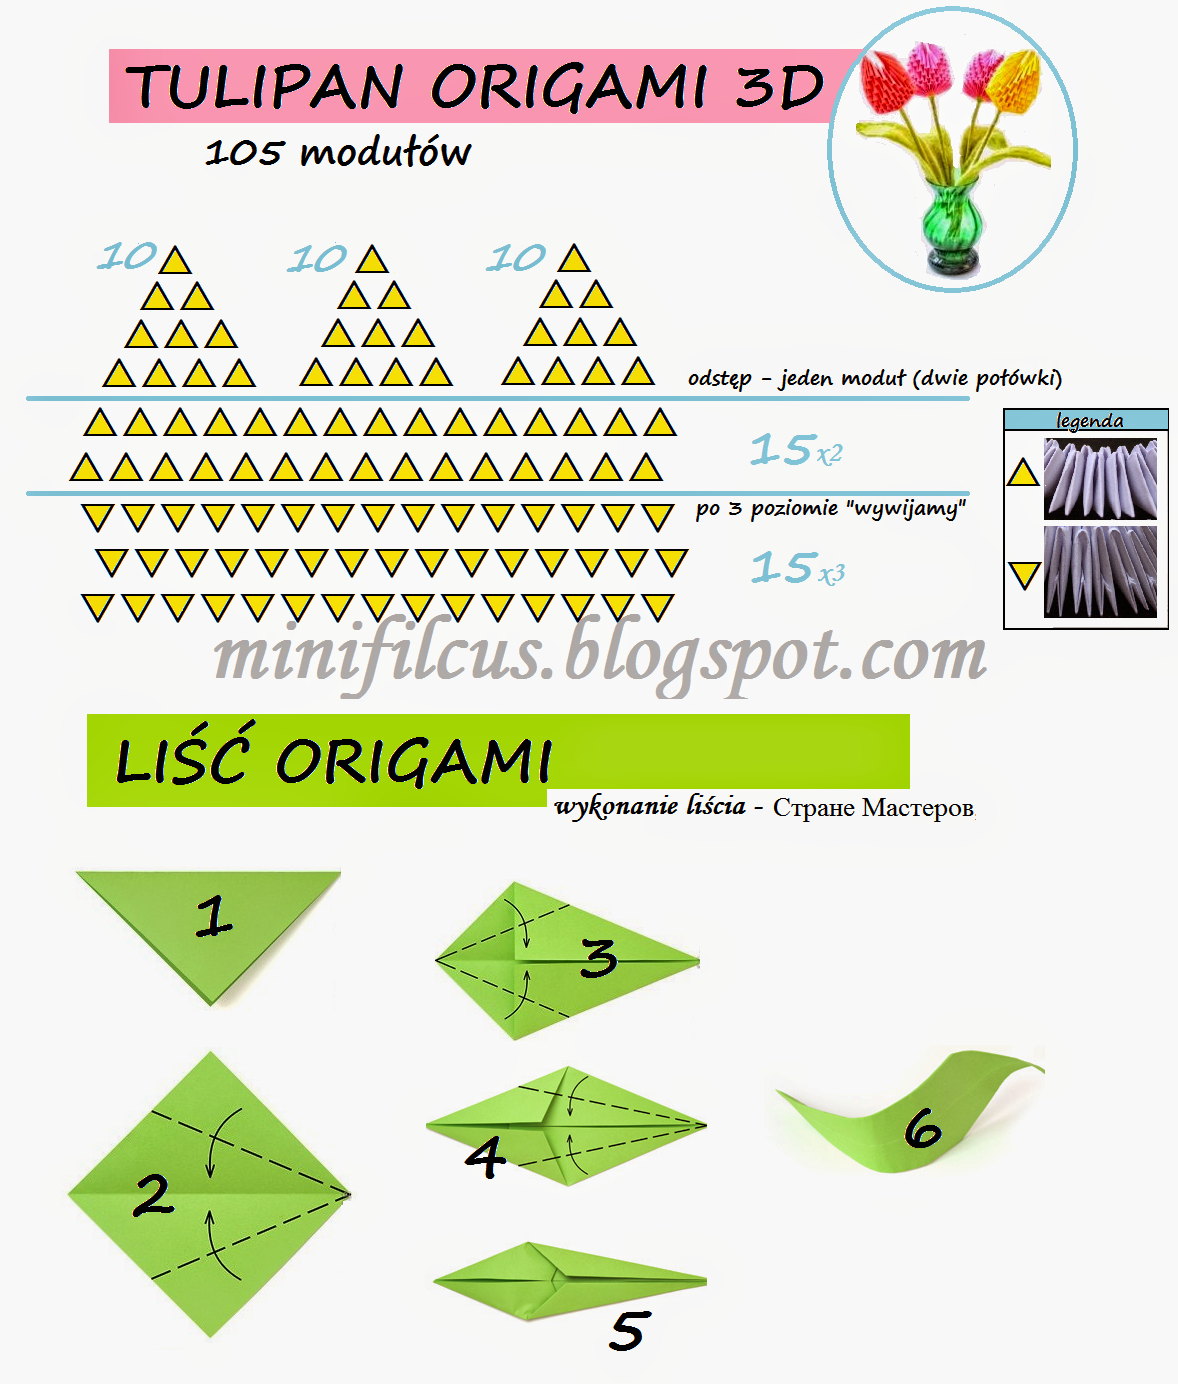 Pin By M B On Origami Pinterest Peacock Diagram Patterns And 3d